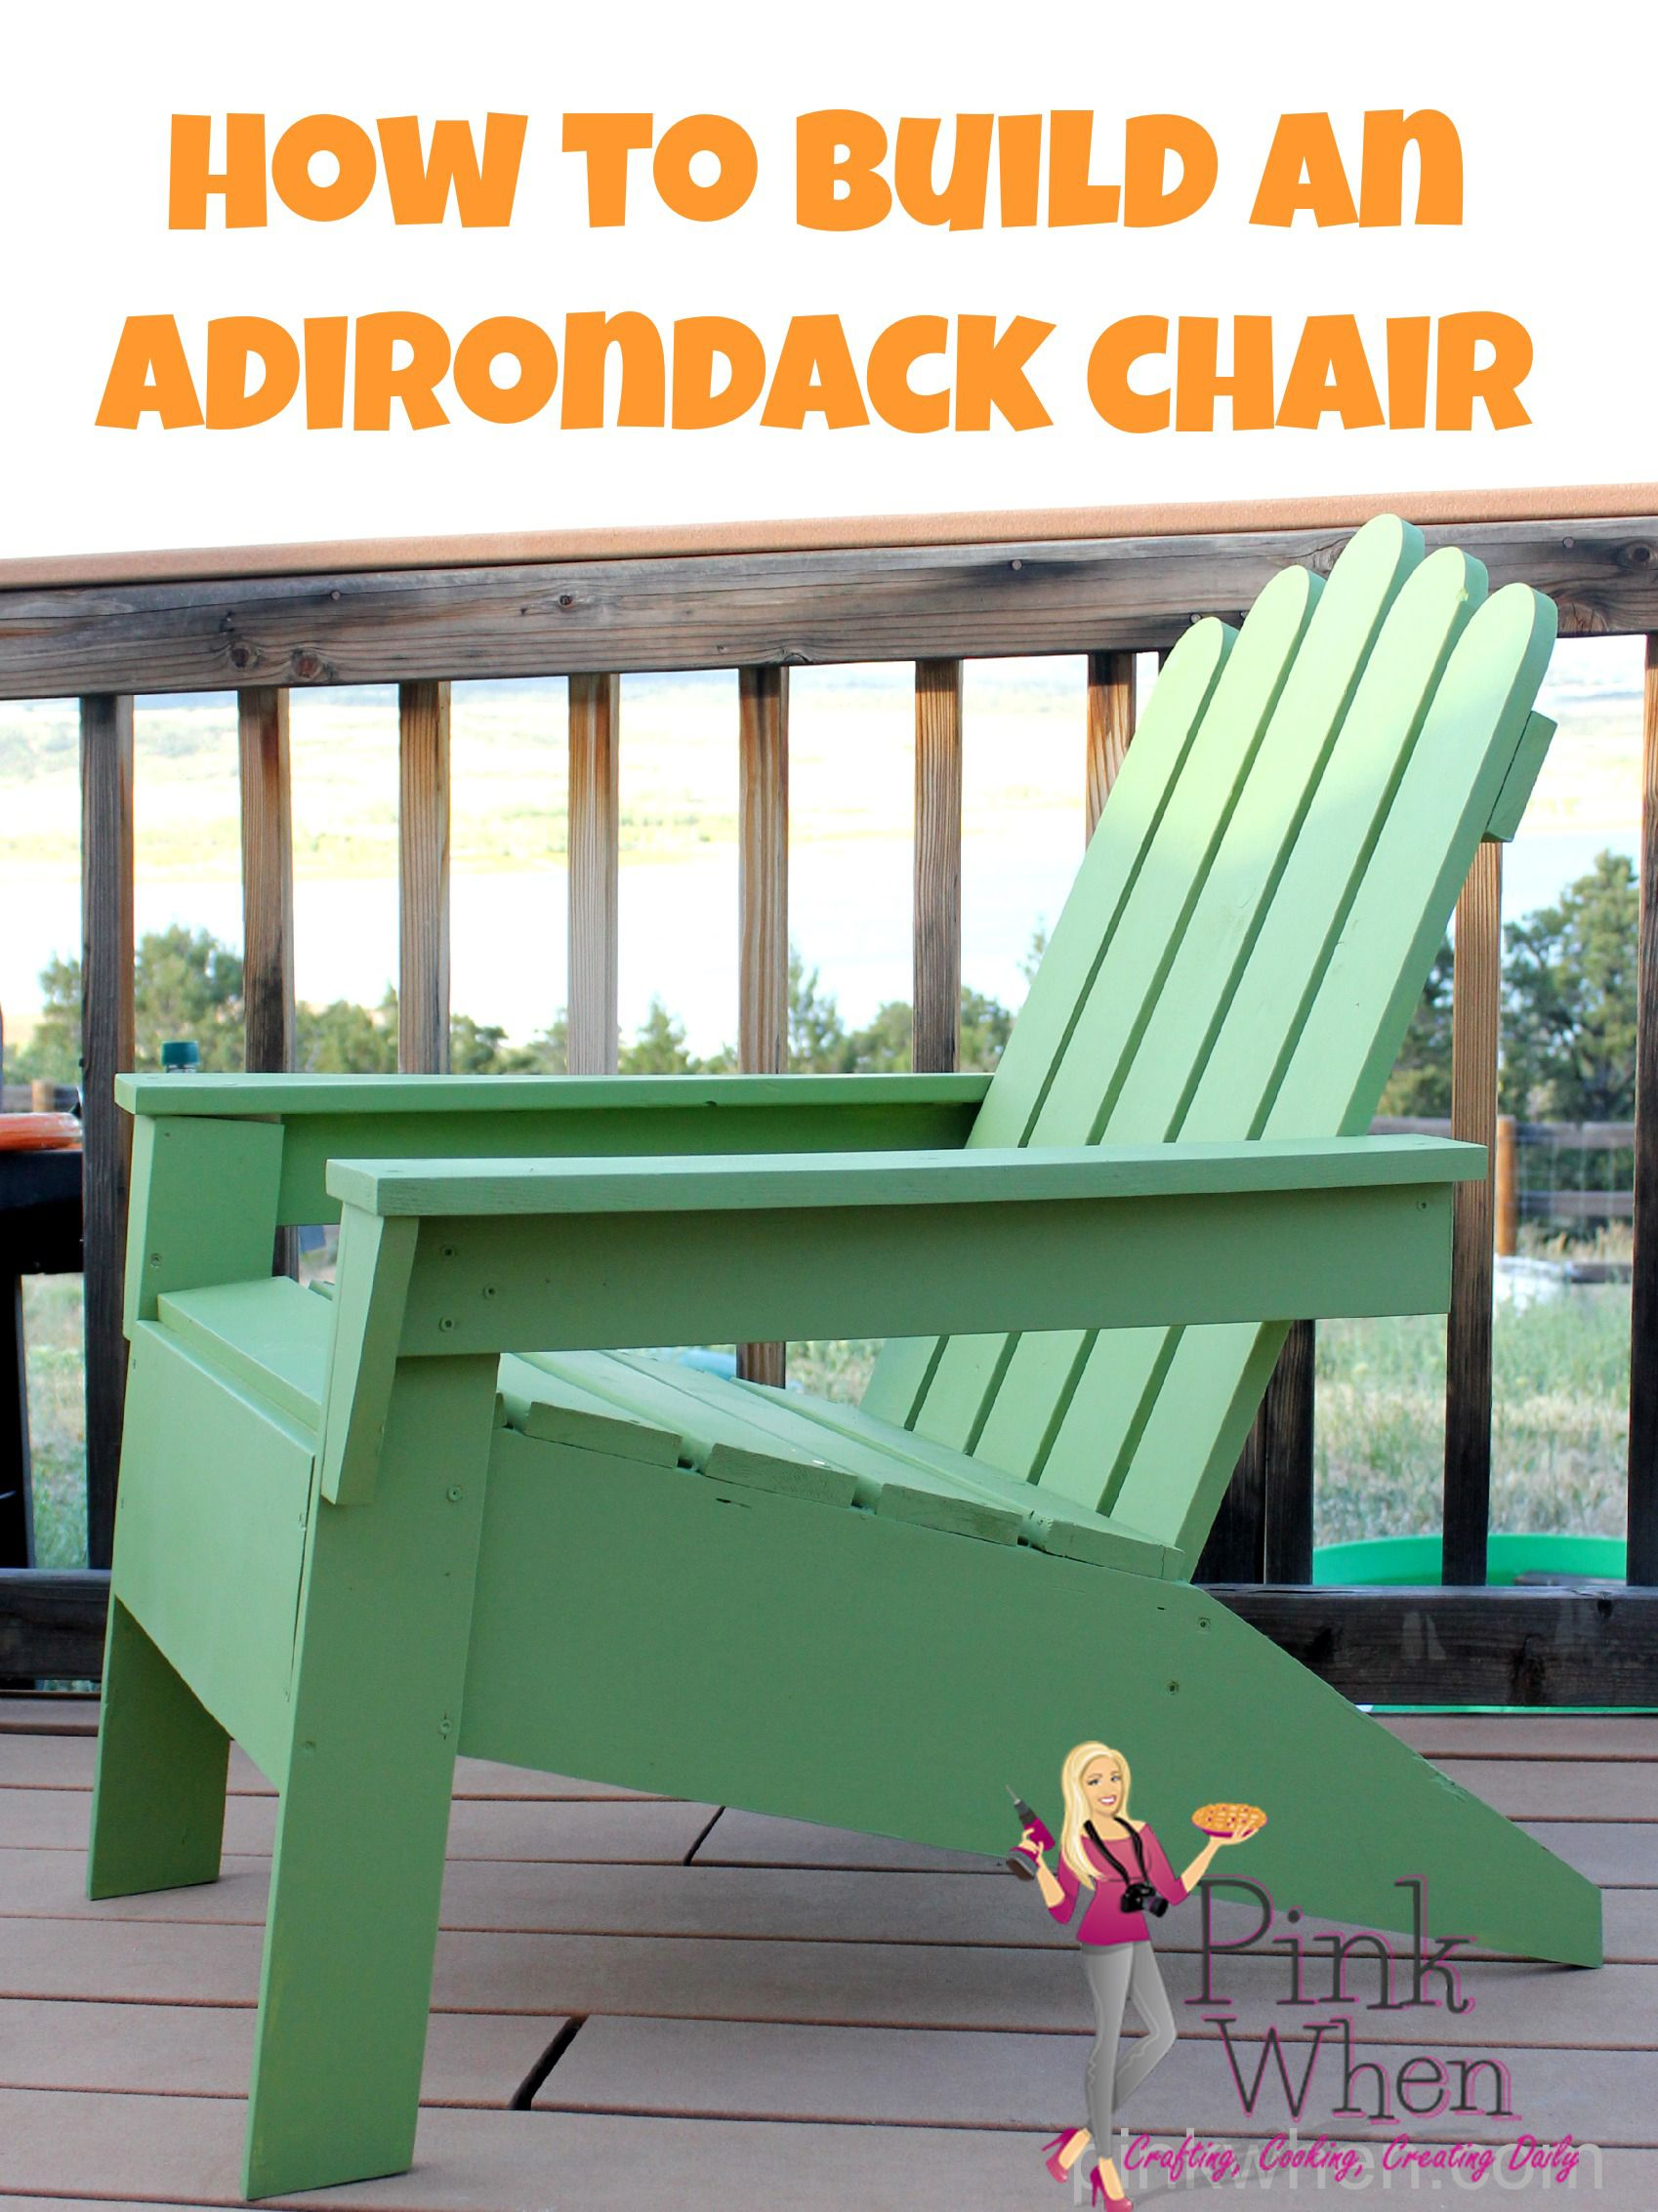 making your own adirondack chairs | How to Make Adirondack Chairs | Diy furniture, Diy home ...